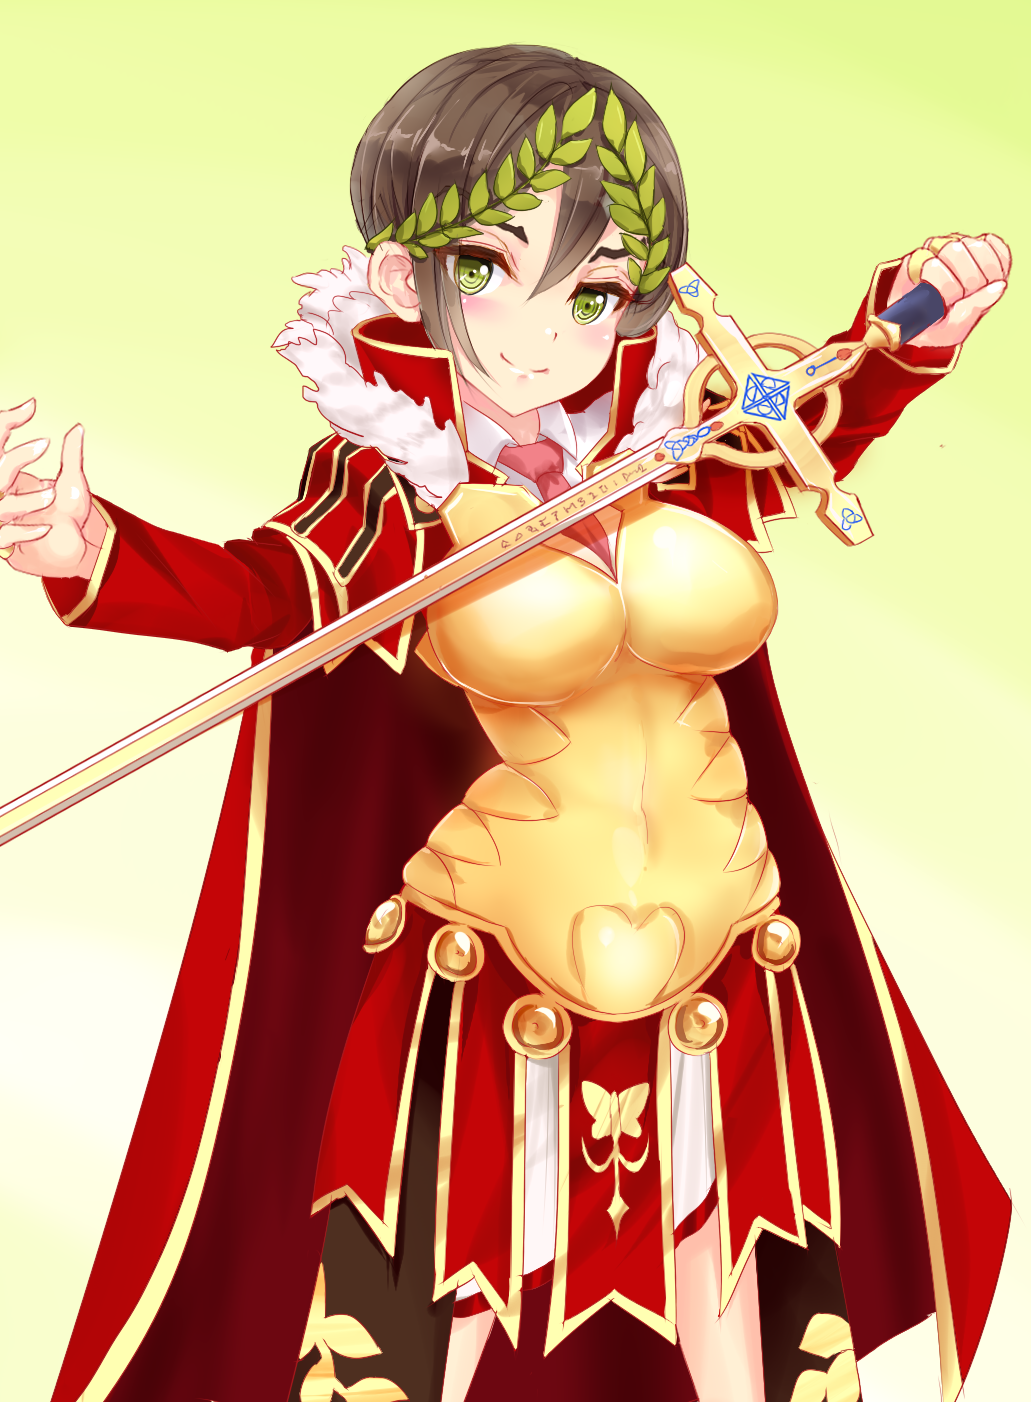 1girl armor black_hair blush breasts cape closed_mouth cowboy_shot fate/grand_order fate_(series) female fur_trim genderswap genderswap_(mtf) green_eyes highres holding holding_sword holding_weapon julius_caesar_(fate/grand_order) large_breasts laurel_crown long_sleeves looking_at_viewer minazuki_(jo) necktie red_necktie short_hair skirt smile solo sword weapon